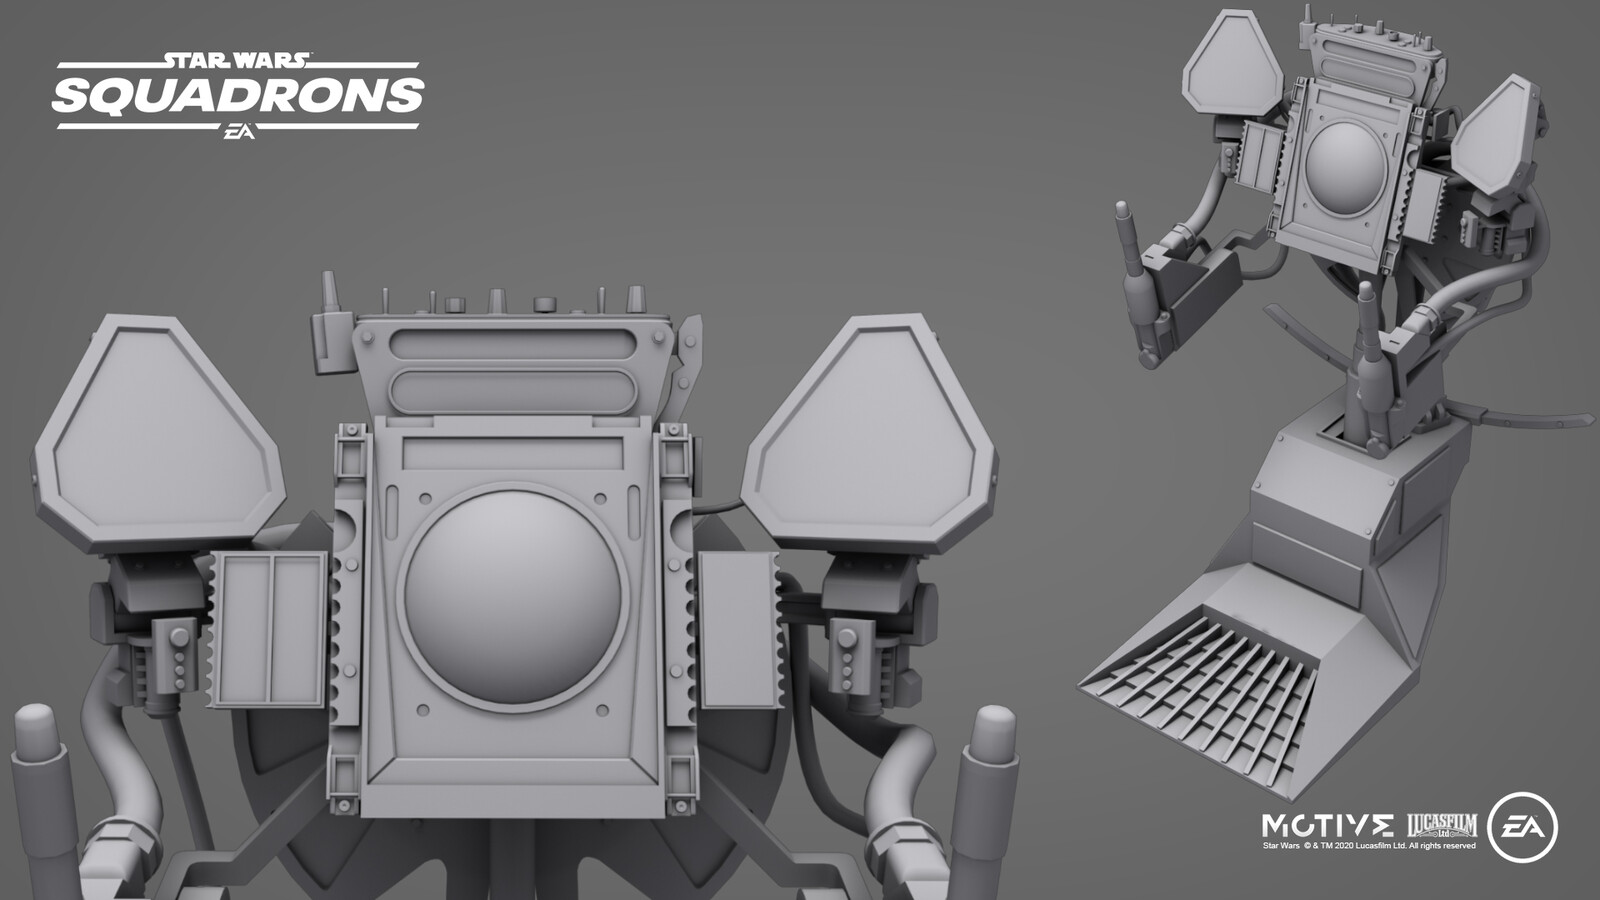 Modeling for the Tie-Fighter cockpit instruments. This mesh is also share in the Tie-Defender and the Tie-Bomber with minor modifications